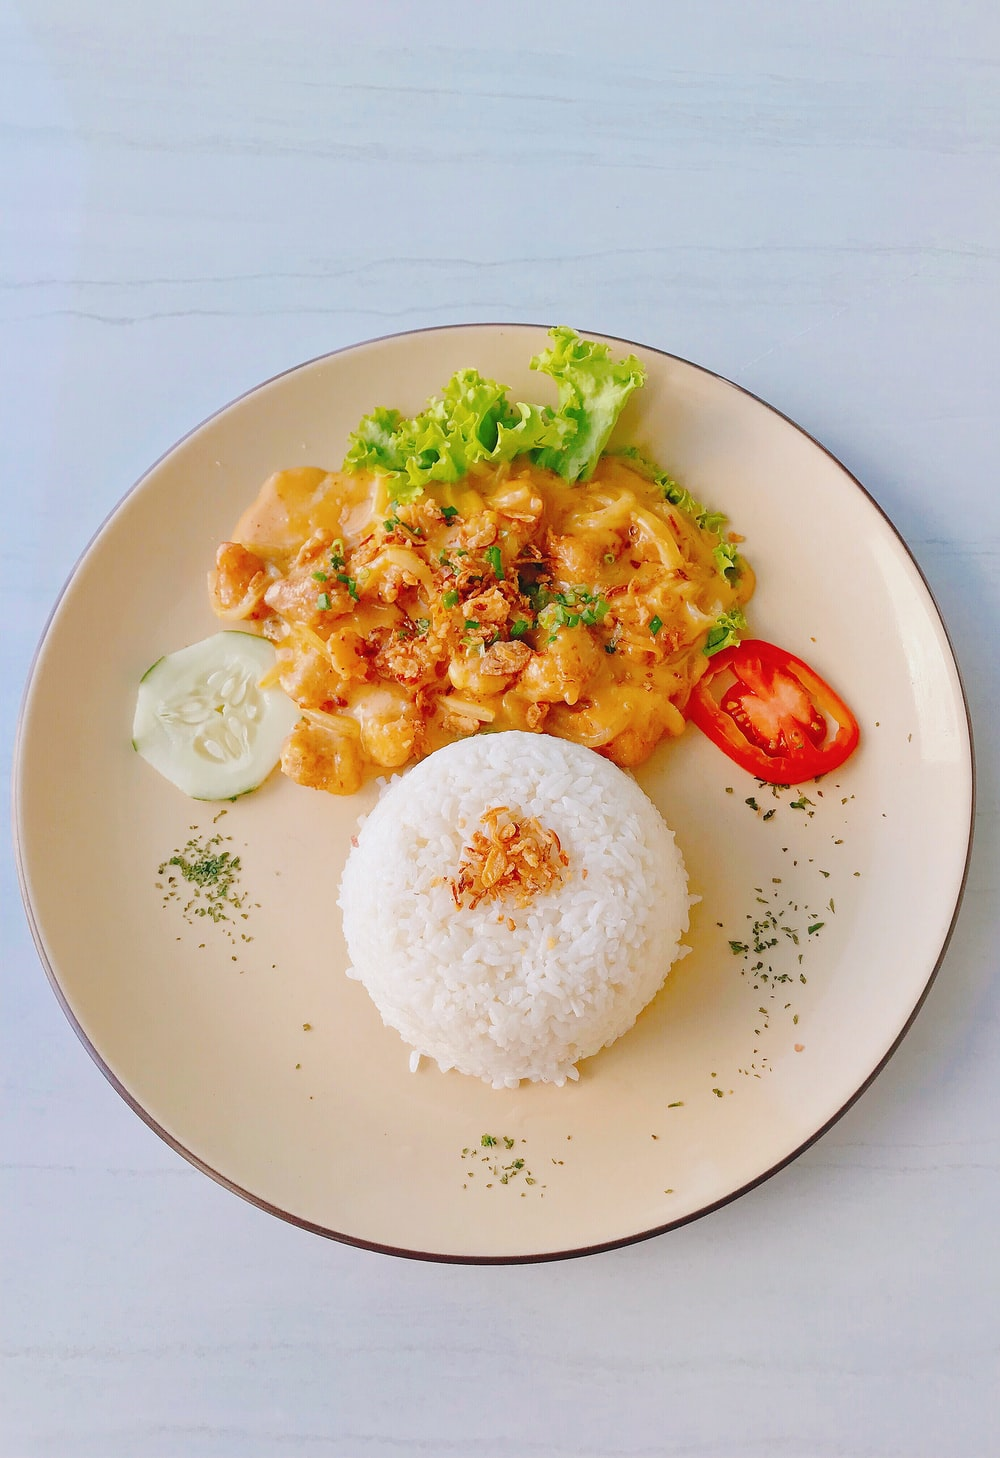 cooked rice with egg